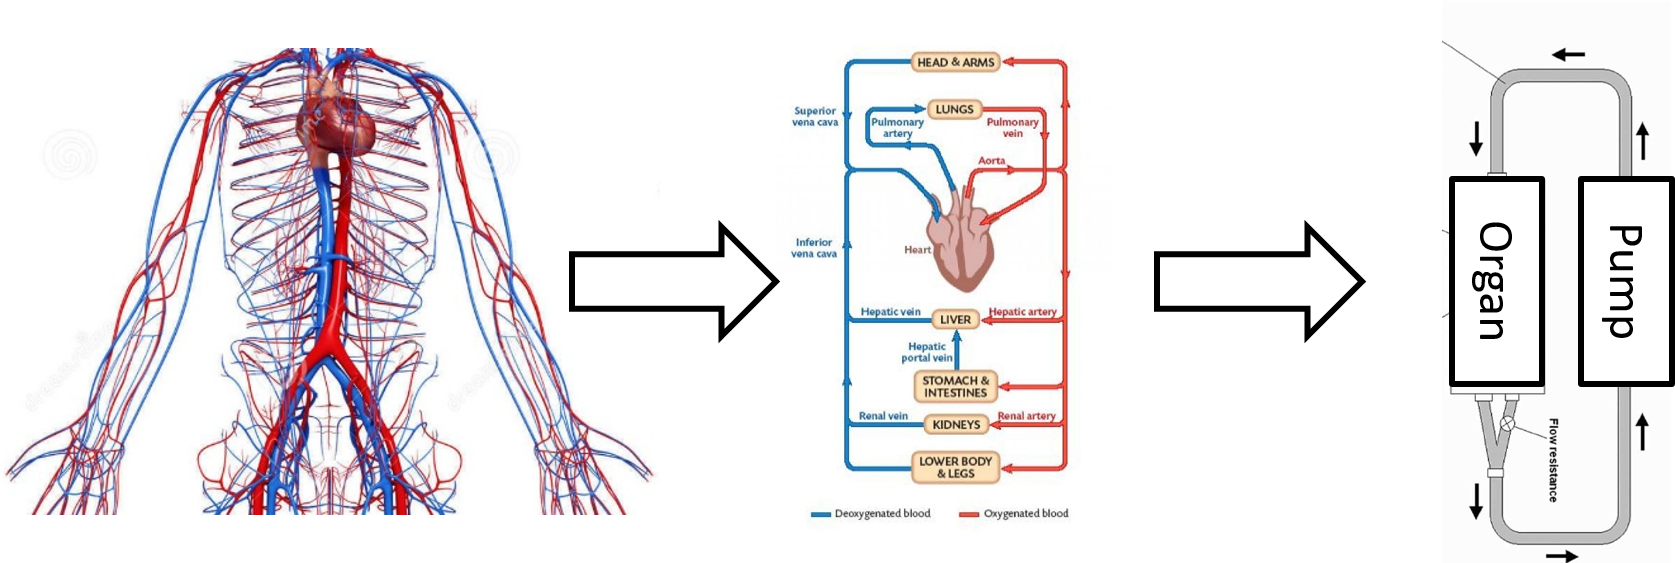 August 24 2018 - Paired with experts in modelling and simulation (Dr Willem van Muers) and the Dean of ANU's Medical School (Prof Russell Gruen), we are looking to use self-assessment and experience-based learning to improve our ability to teach the cardiovascular system for biomedical engineers.